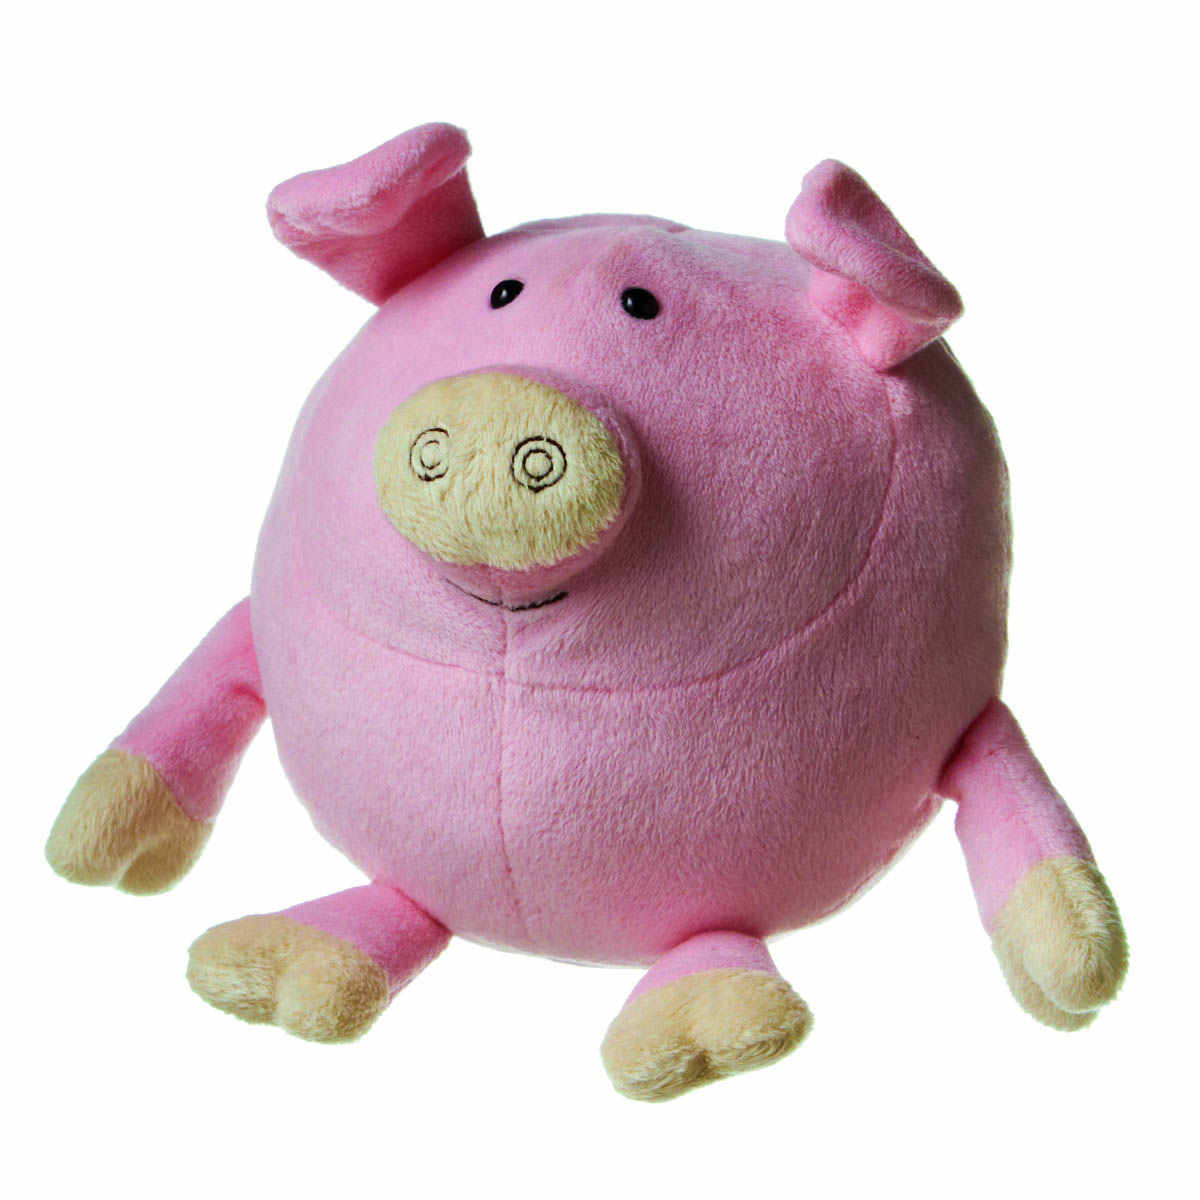 Meet Phoebe the Pig! Did you know that pigs are among the